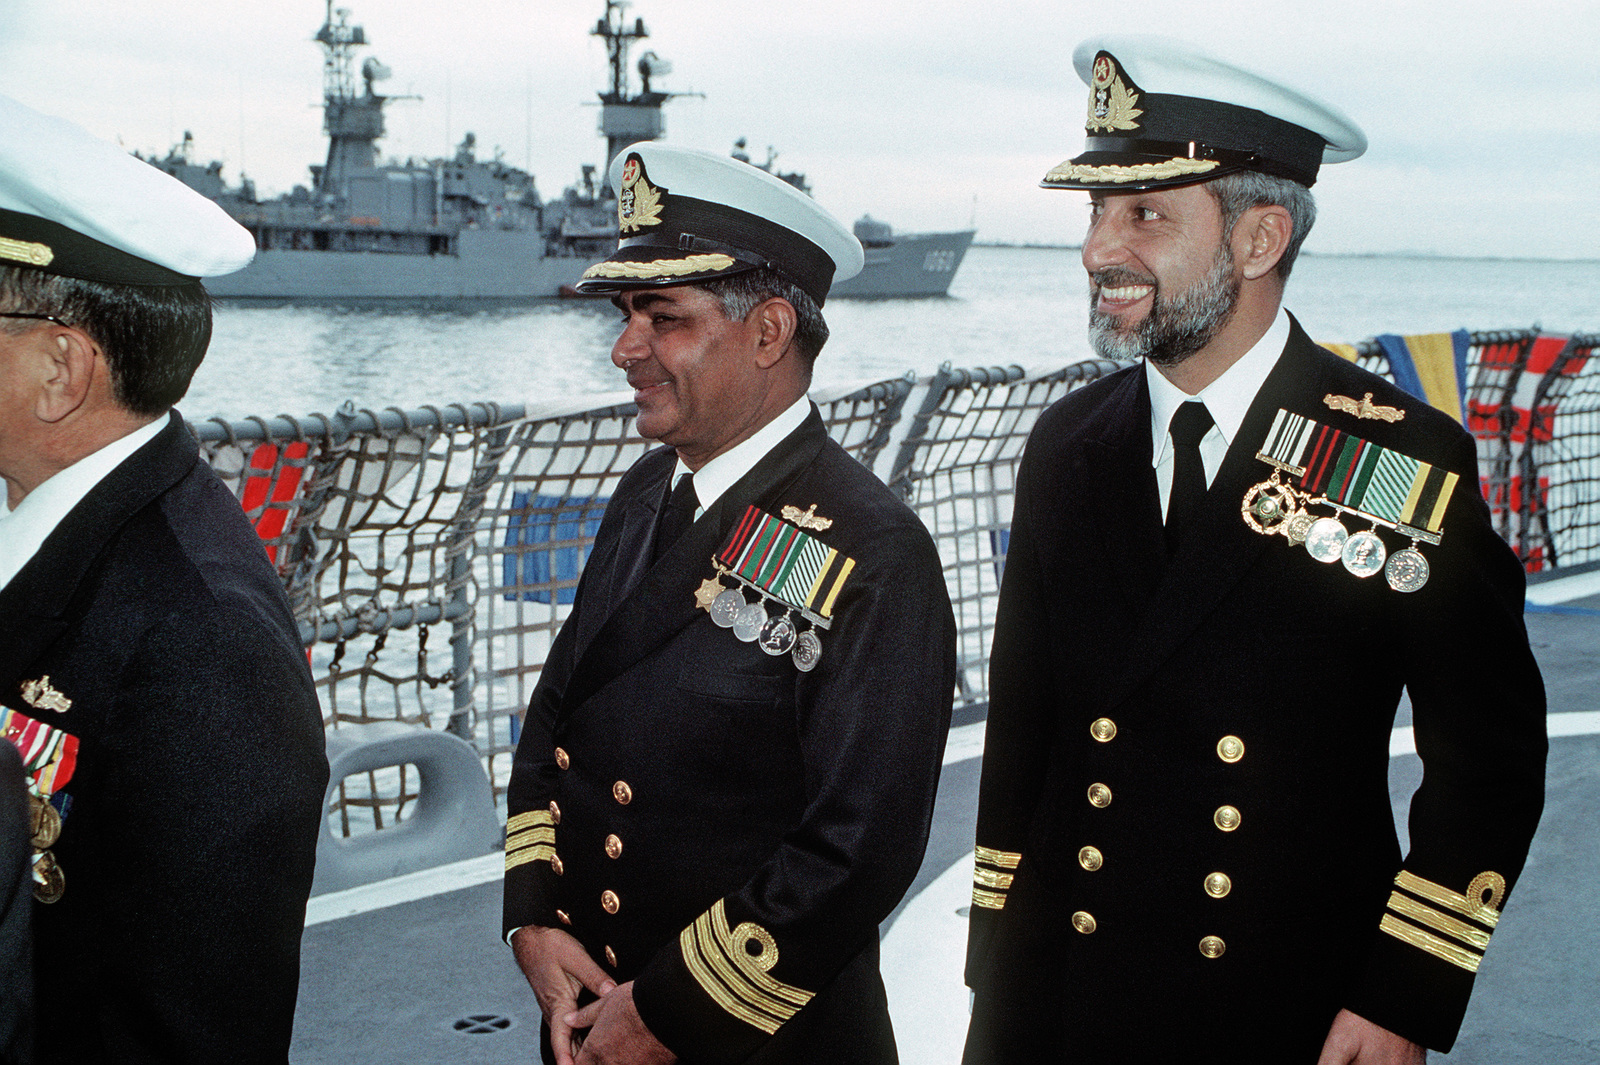 Pakistani naval officers arrive for the ceremony during which former US Navy ships, the Guided Missile Frigate USS BROOKE (FFG 1) and the Frigate USS O'CALLAHAN (FF 1051), will be transferred to the Pakistani navy.  The BROOKE will be commissioned as PNS KHAIBAR (D 163) while the O'CALLAHAN will become PNS ASLAT (F 265)